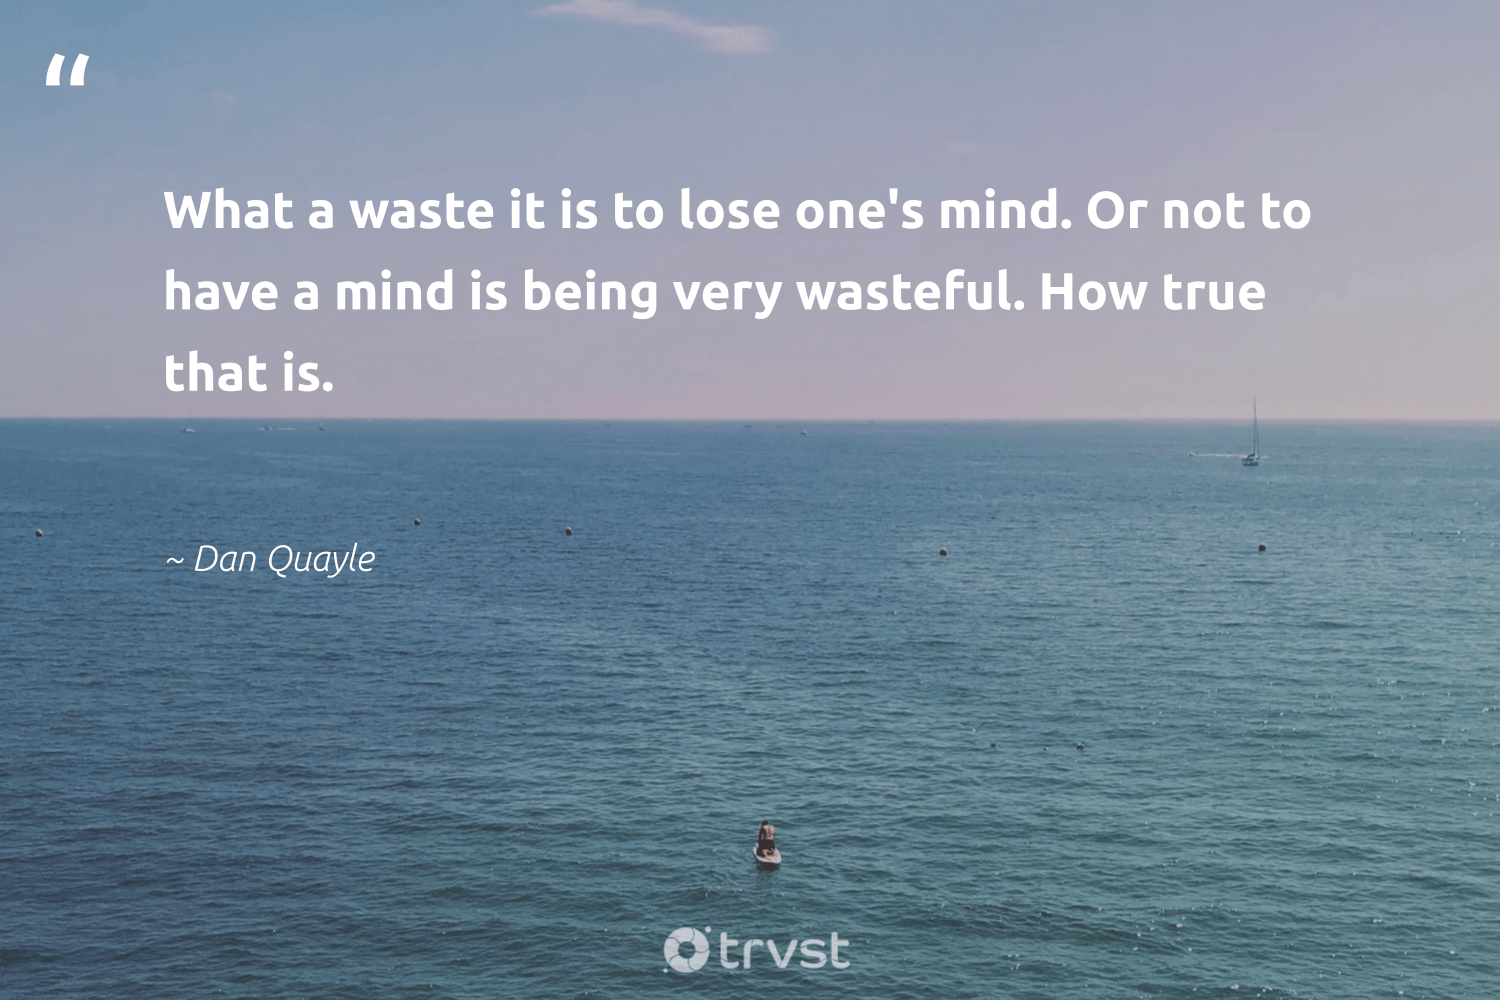 """What a waste it is to lose one's mind. Or not to have a mind is being very wasteful. How true that is.""  - Dan Quayle #trvst #quotes #waste #health #gogreen #nevergiveup #planetearthfirst #begreat #socialimpact #changemakers #impact #togetherwecan"